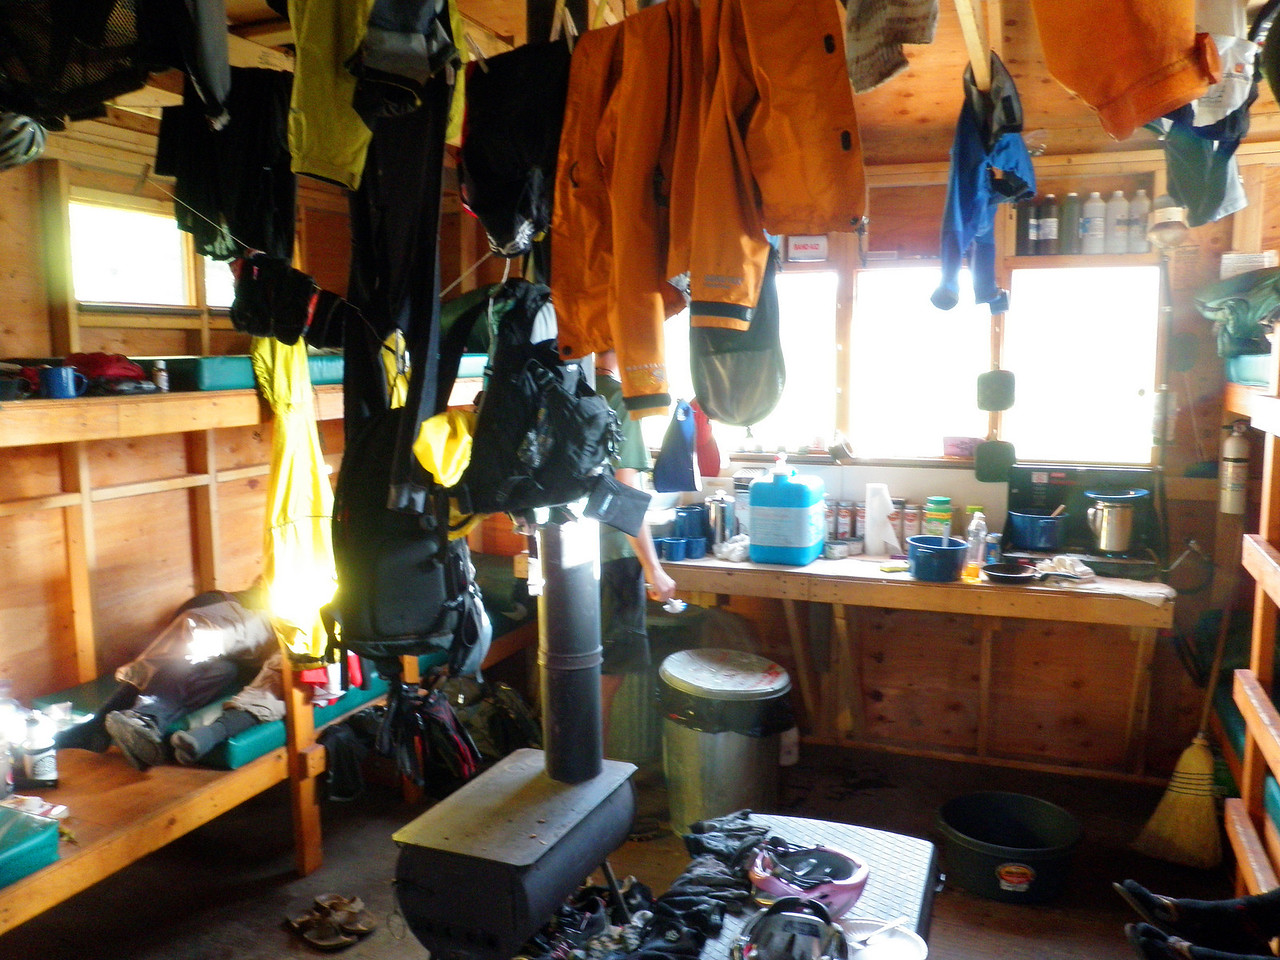 Day 1 Drying Clothes Turned the Hut into a Lycra Jungle